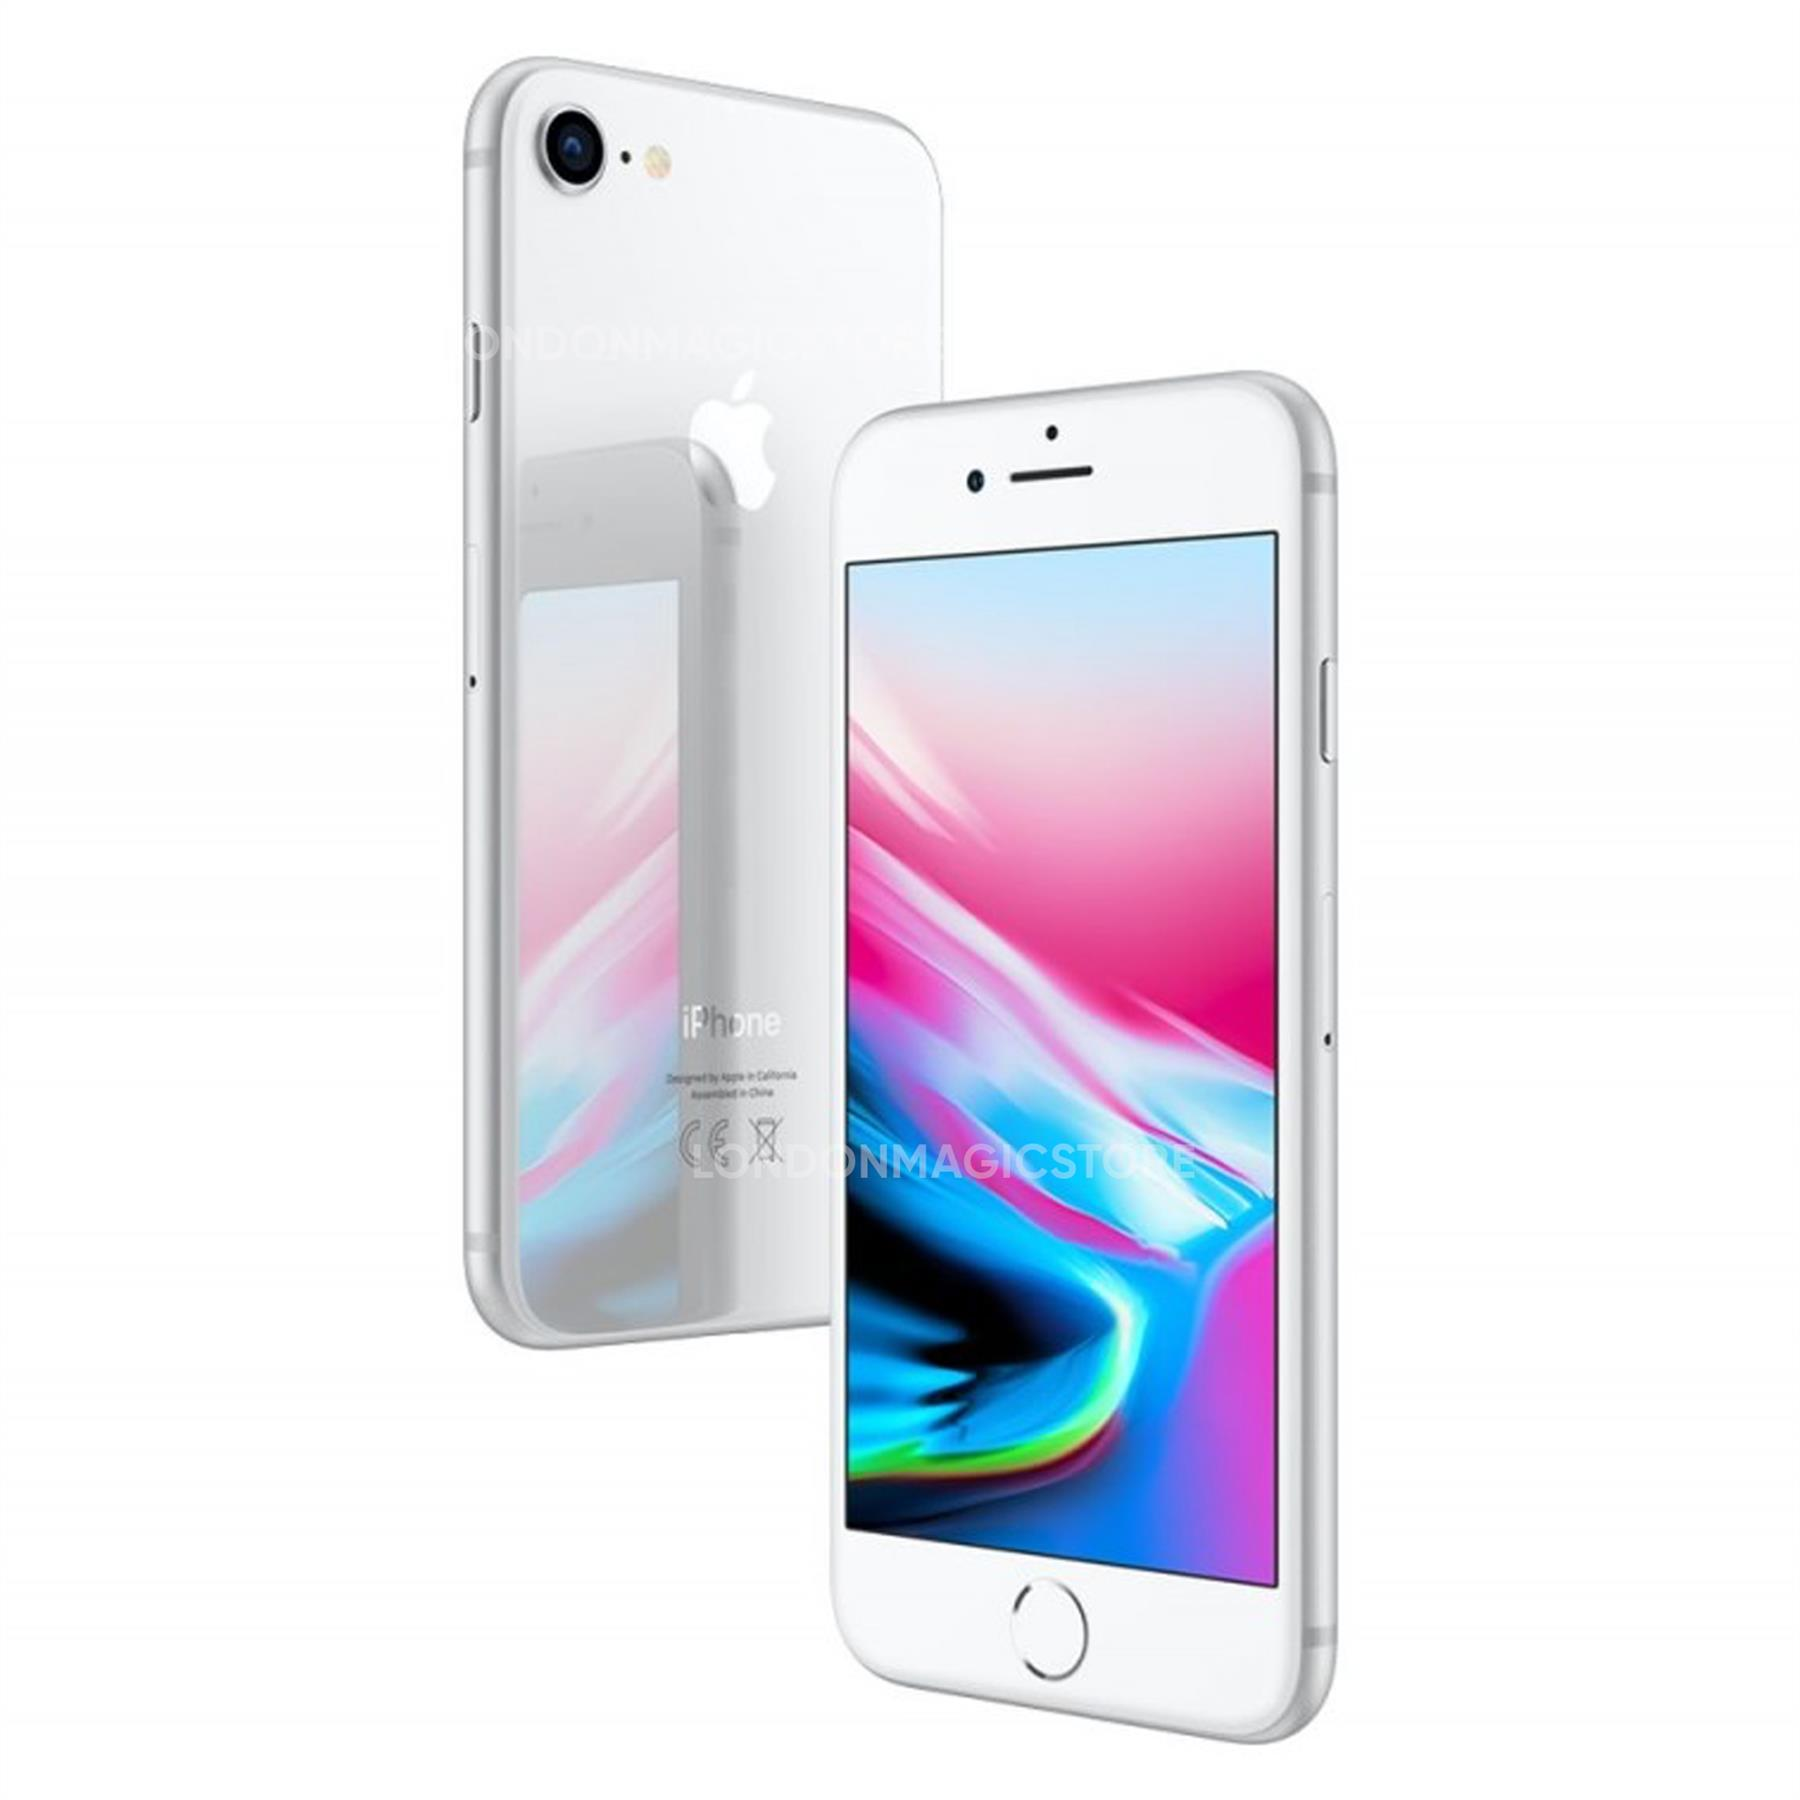 thumbnail 7 - Brand New Apple iPhone 8 64GB 256GB Unlocked - All Colours - With Original Box